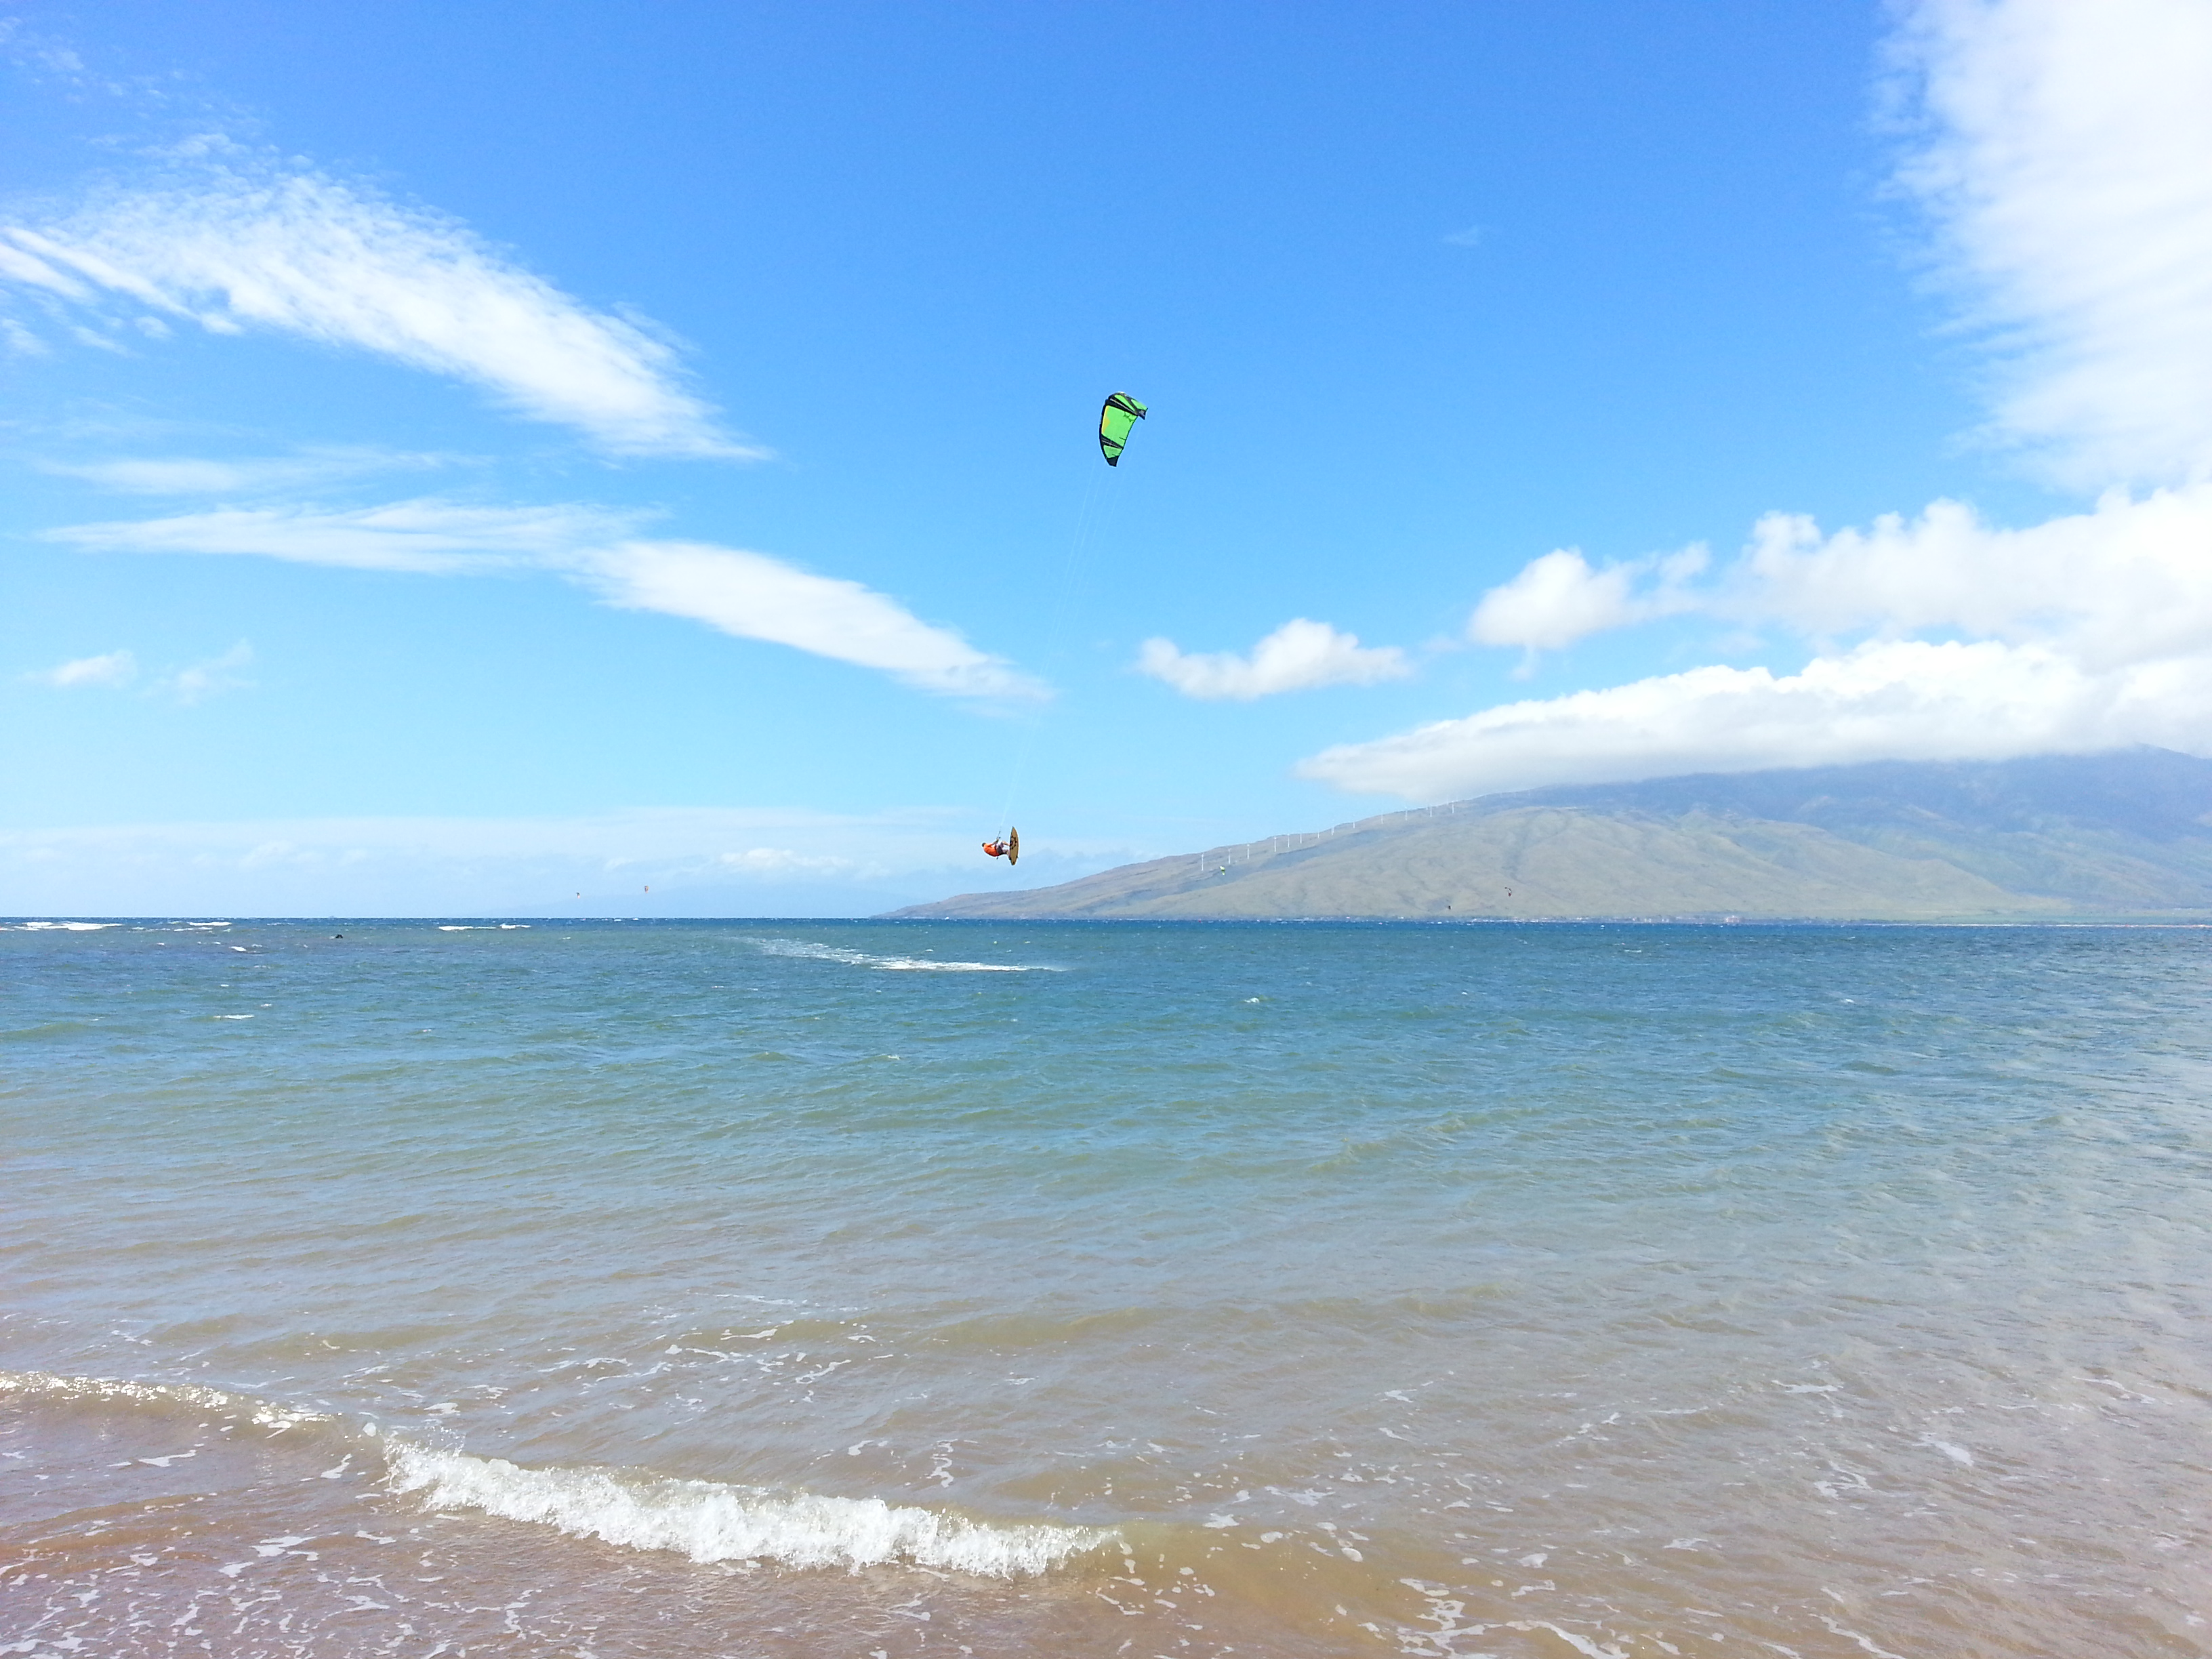 Windsurfing on Maui